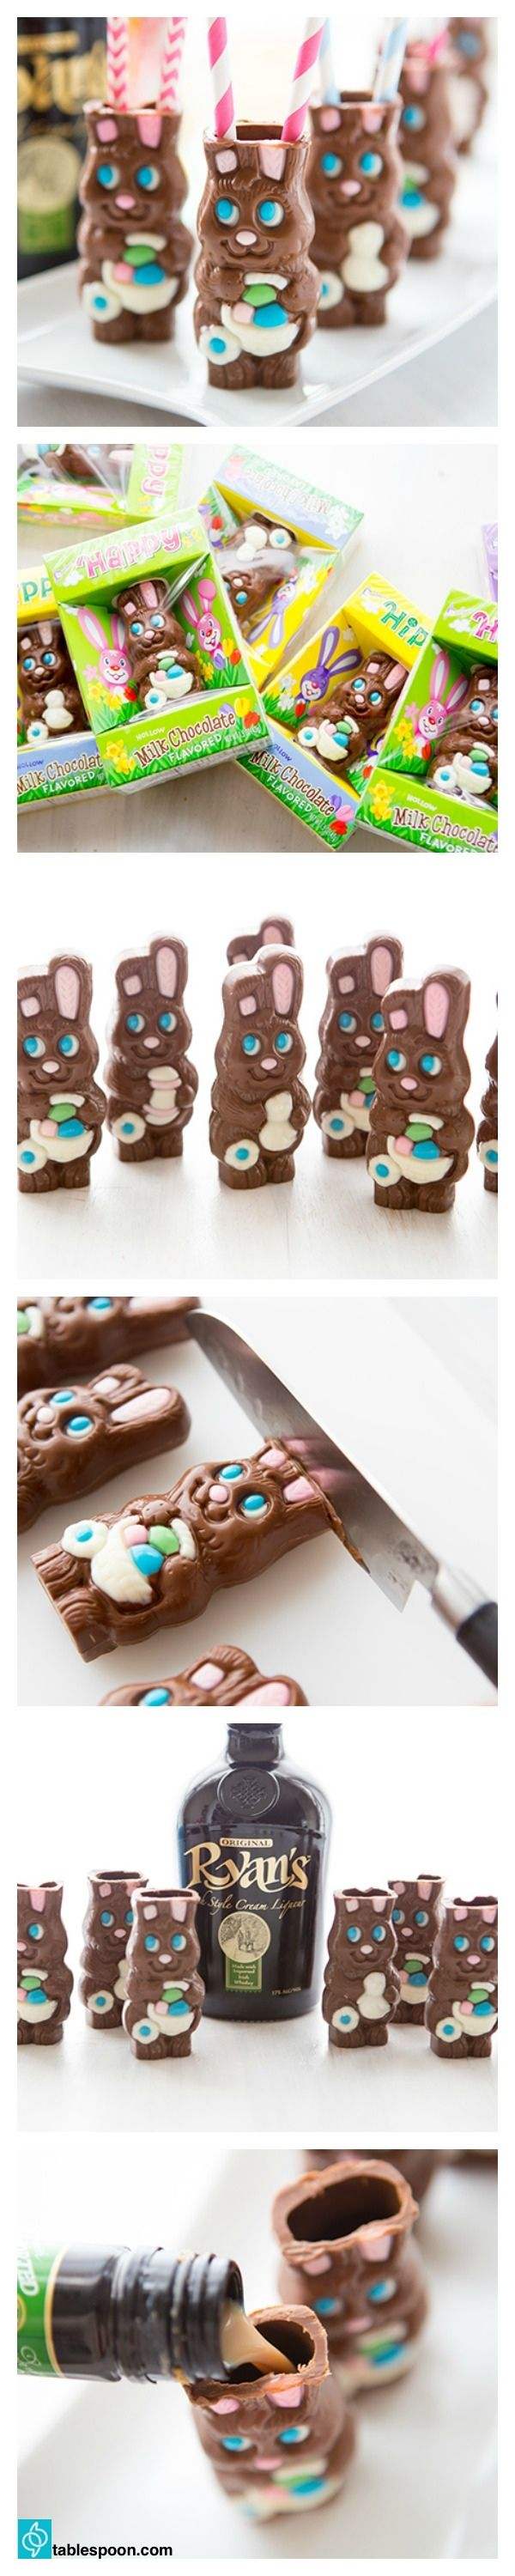 UTILIZA FIGURAS DE CHOCOLATE PARA HACER VASITOS DE CHUPITOS (Turn hollow chocolate bunnies into delicious little shot glasses) #IdeasOriginales #ChocolatesParaPascua